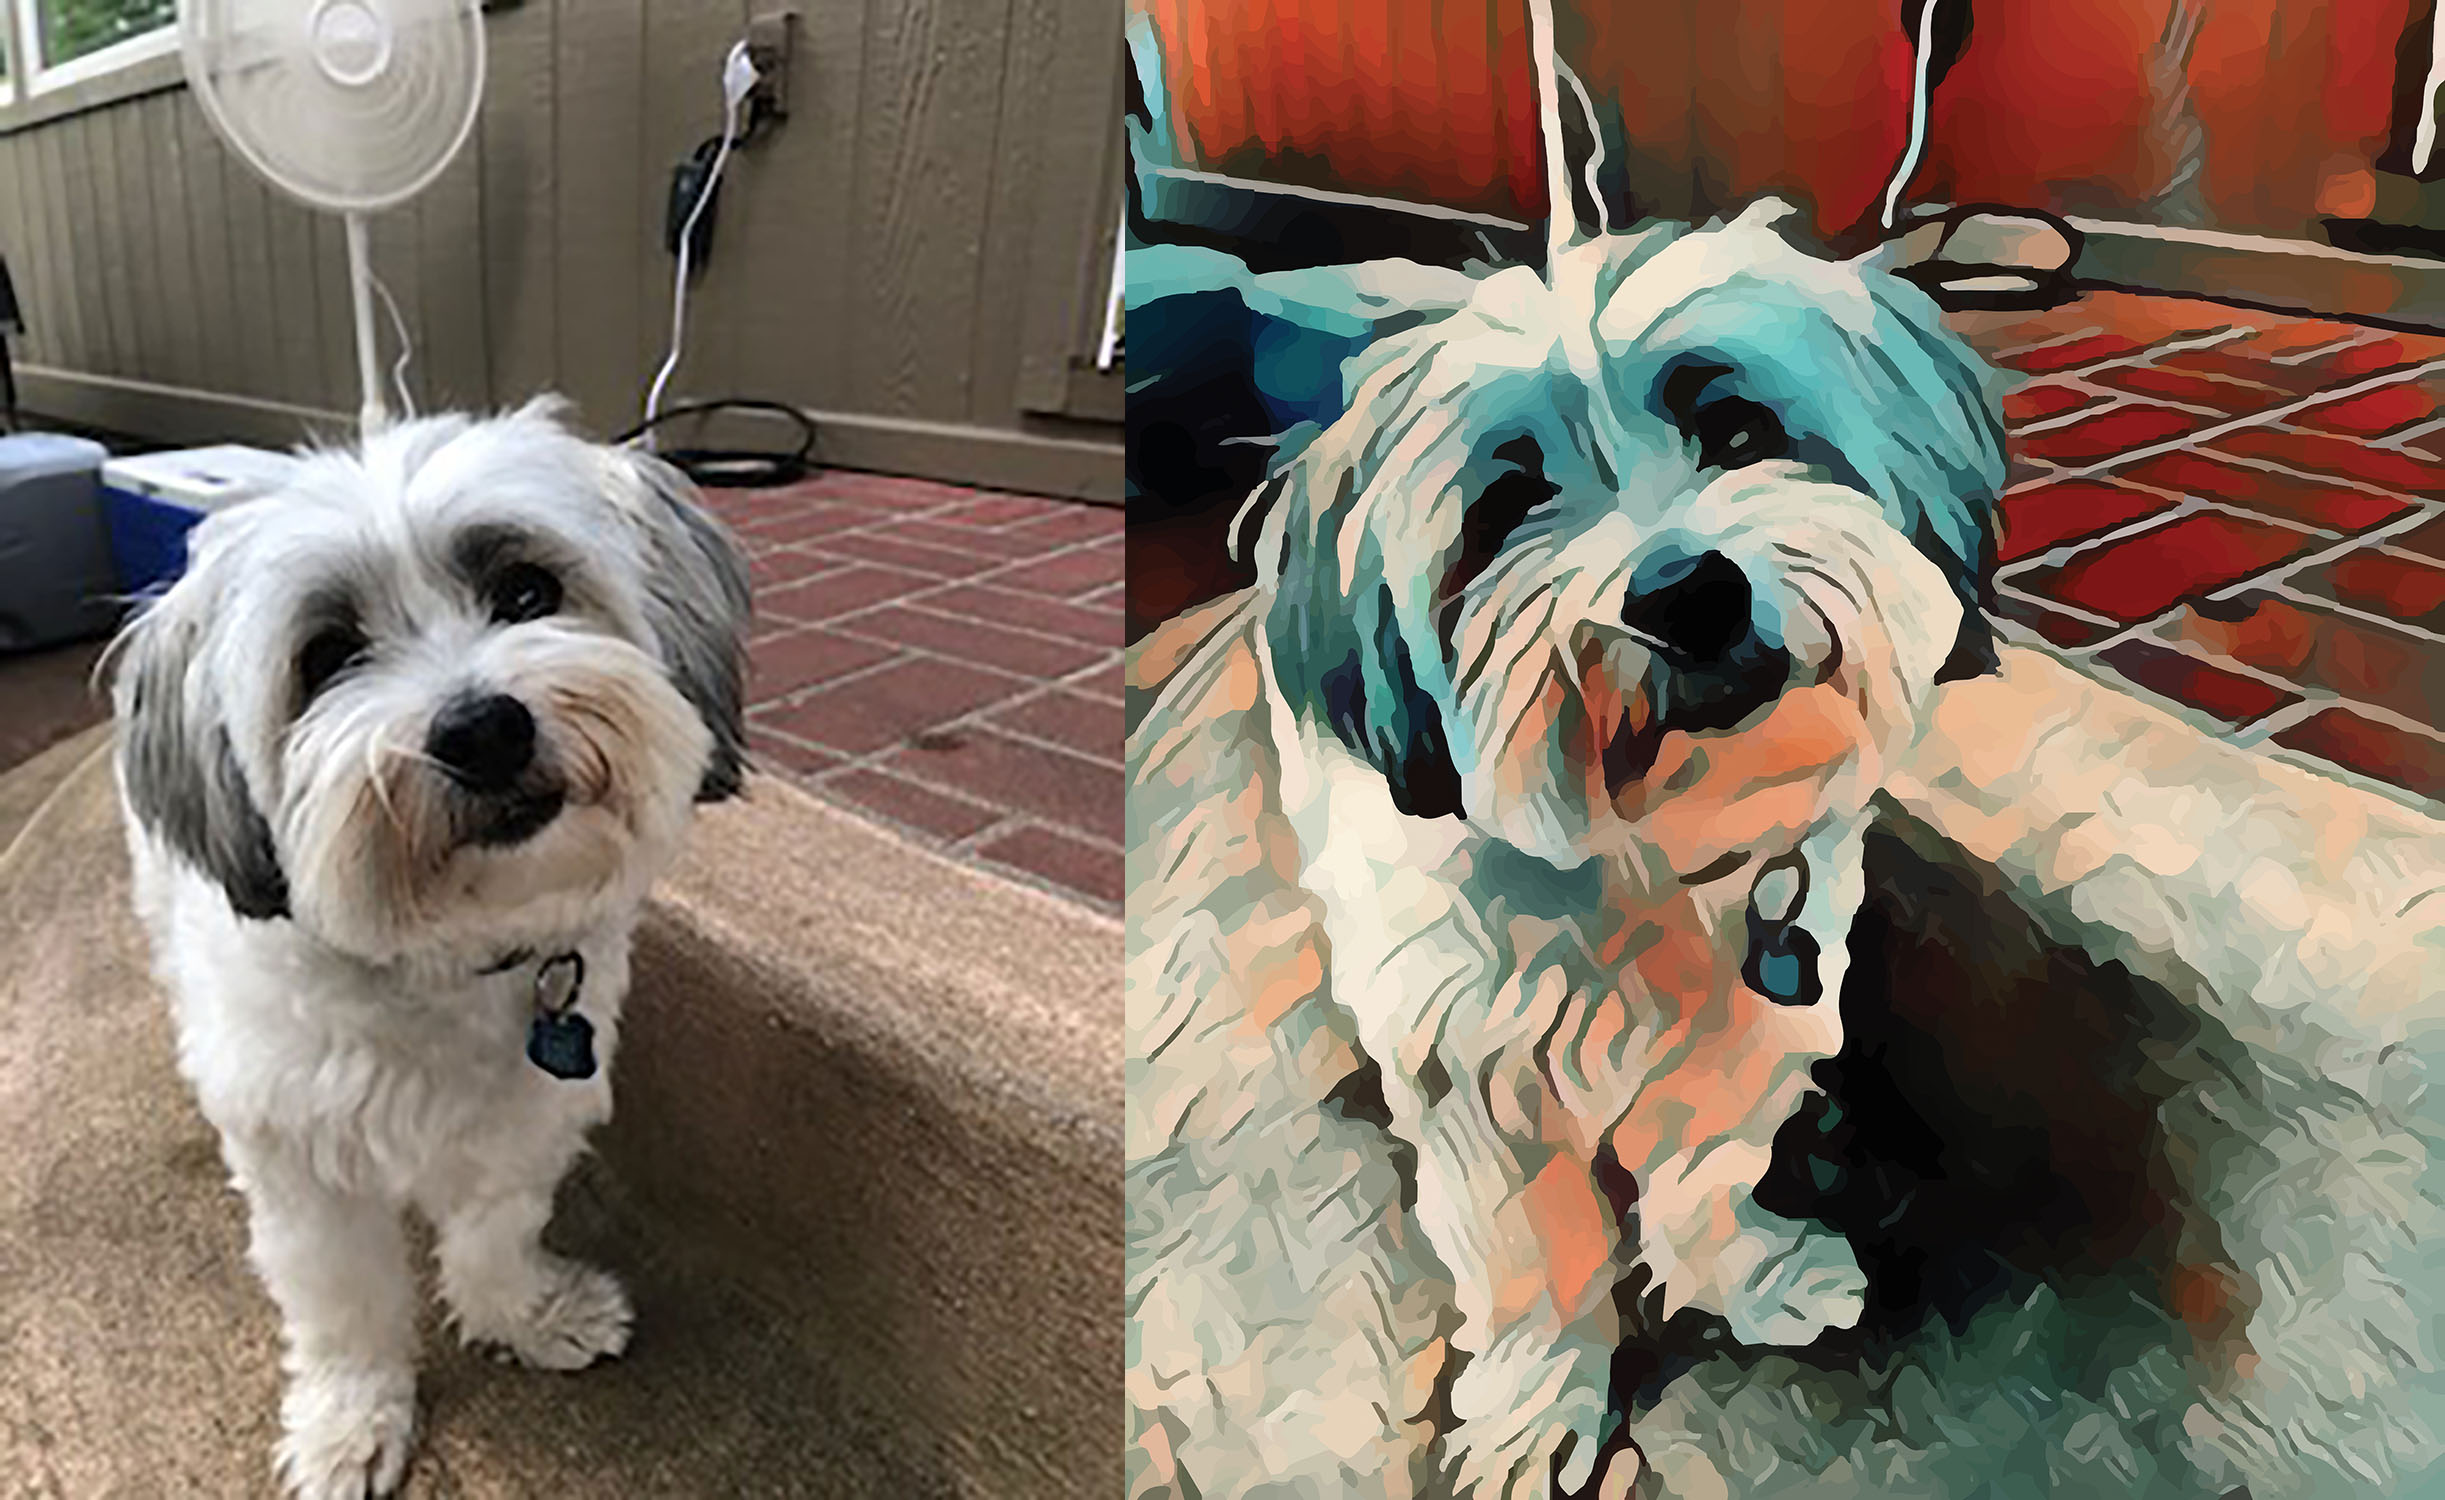 Before and after stylized image of a dog cocking its head